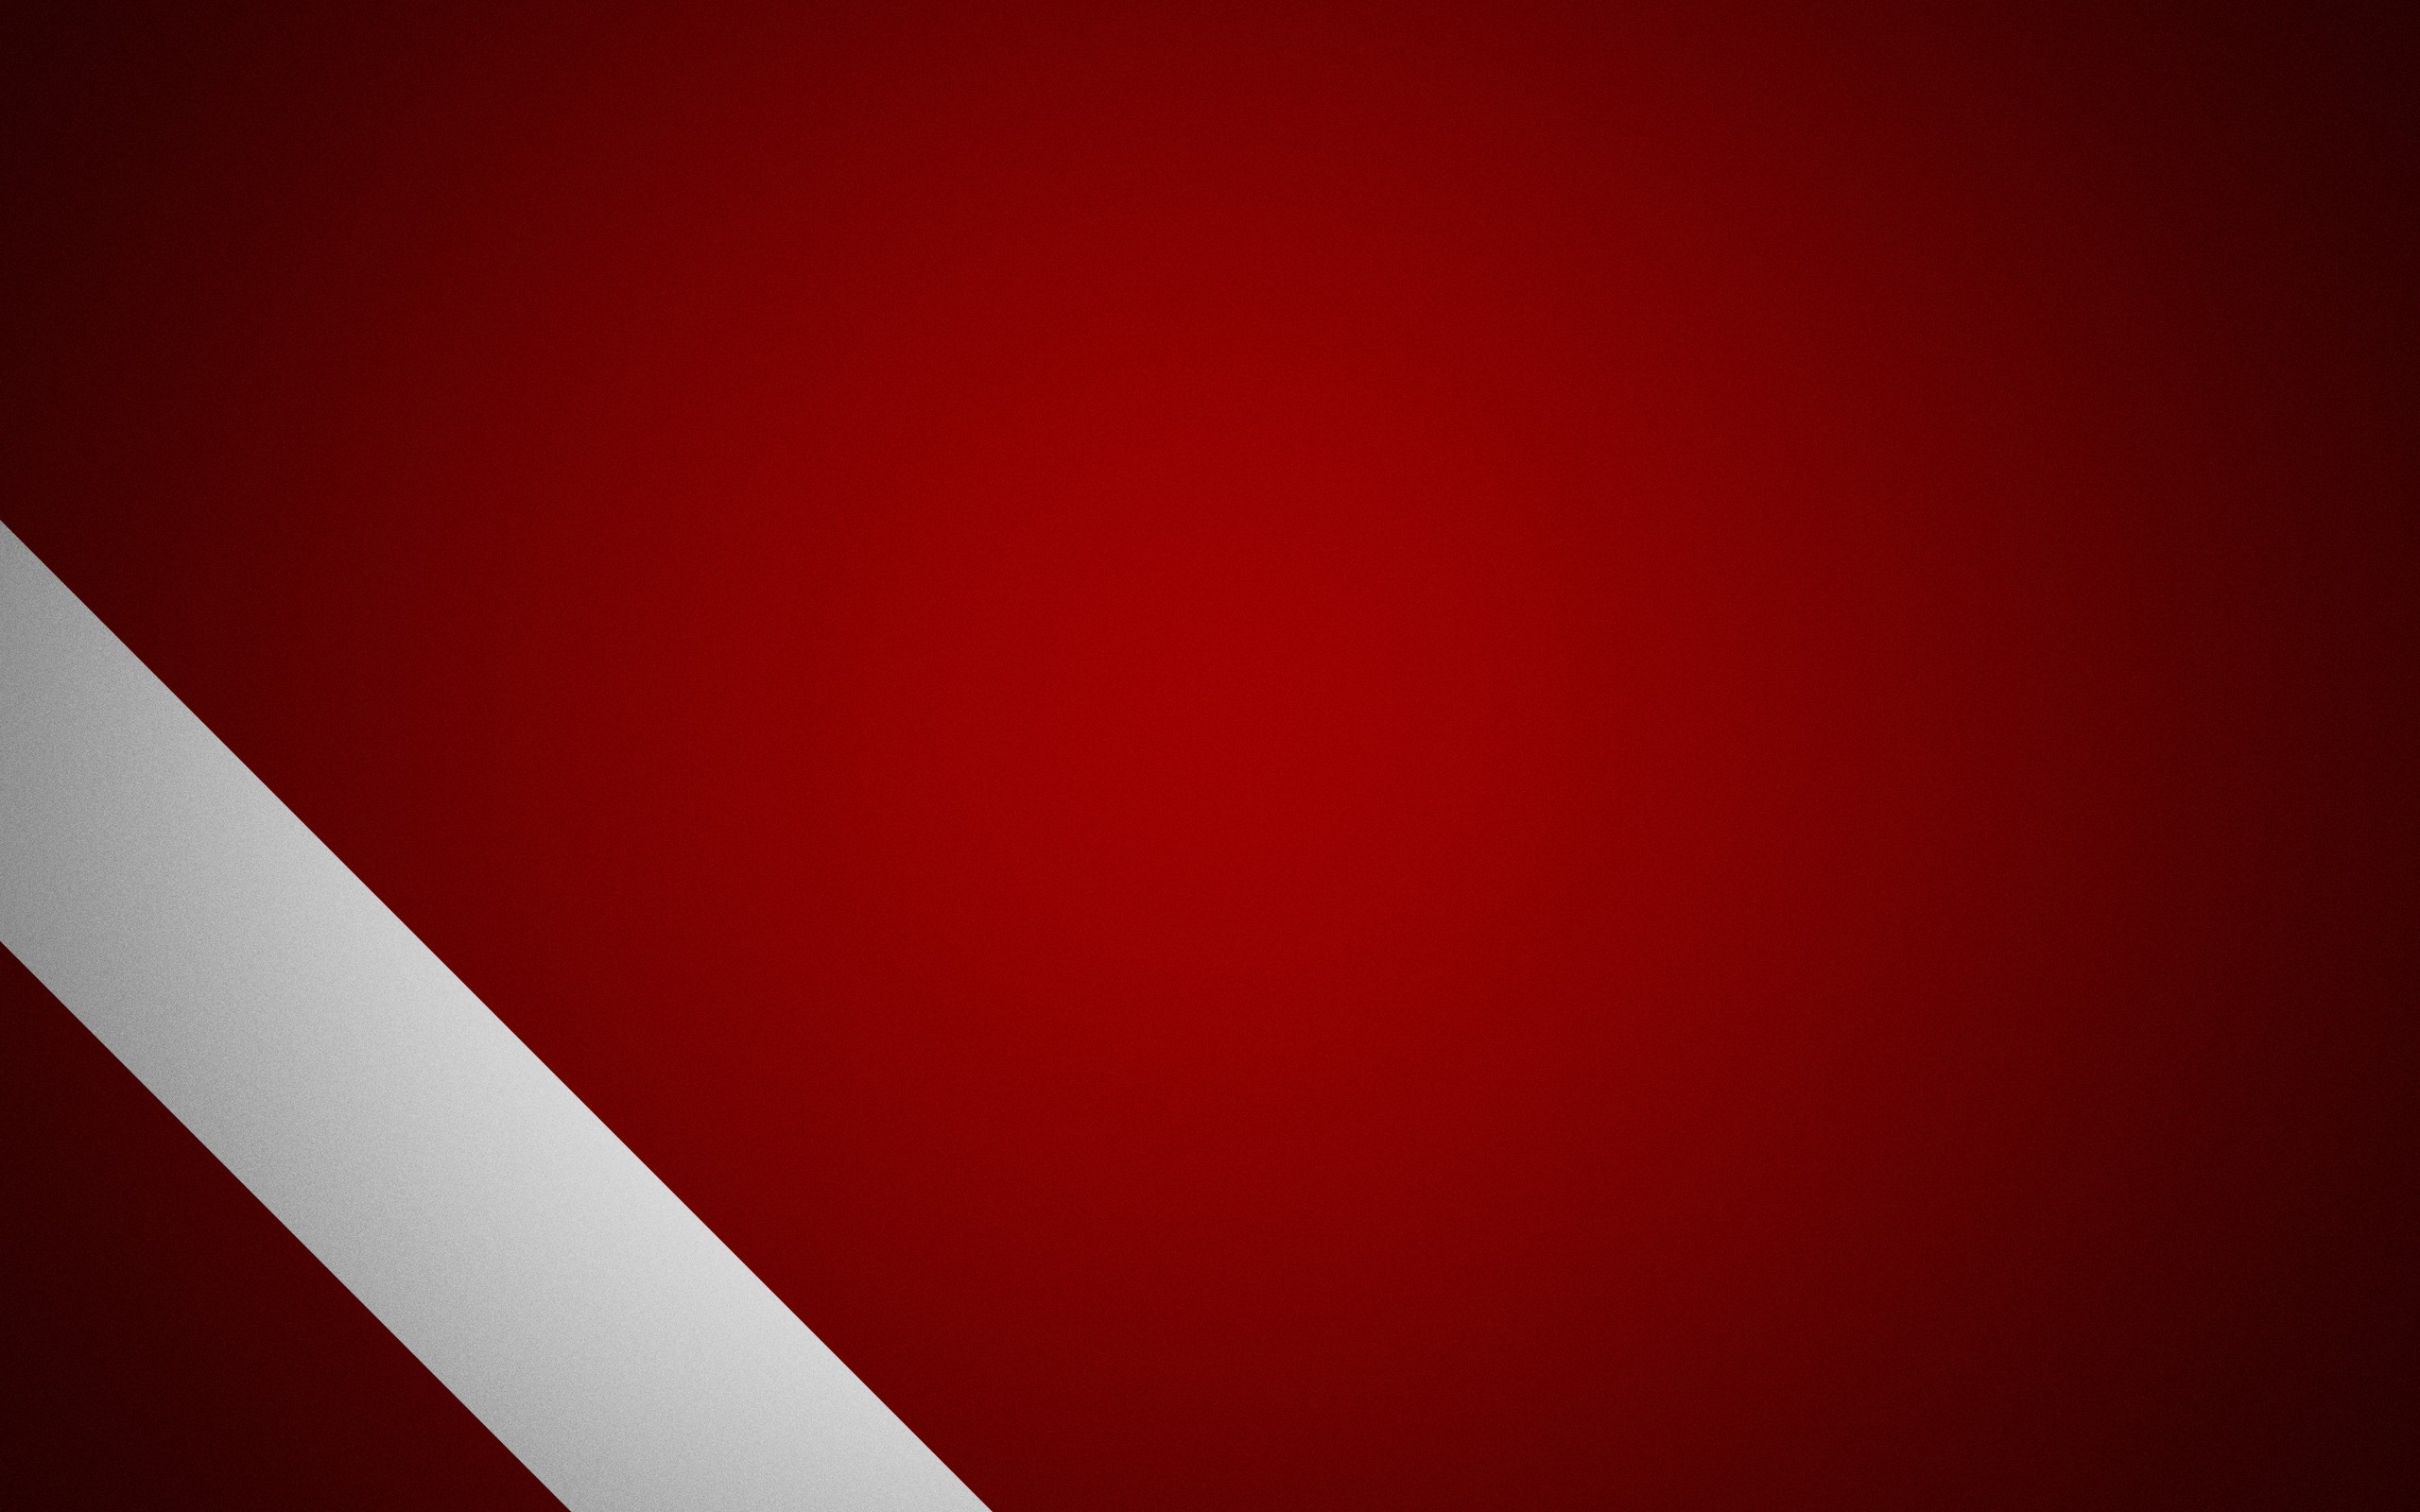 20 Awesome HD Red Wallpapers